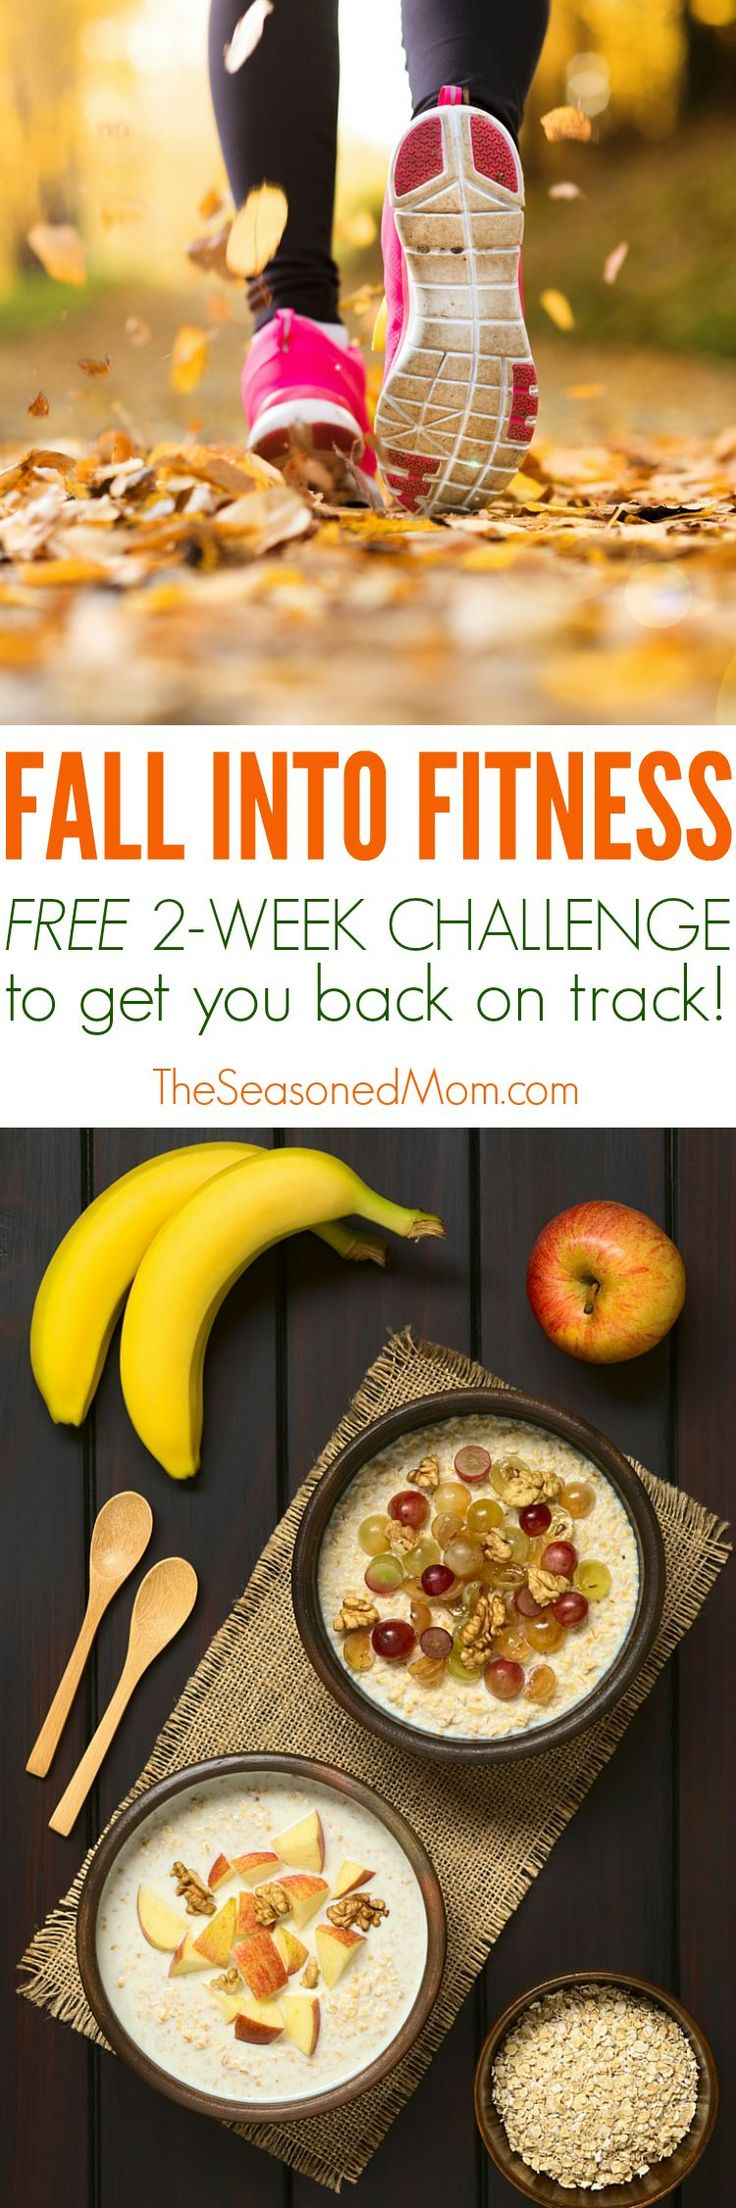 A free clean eating family-friendly MEAL PLAN and WORKOUT CALENDAR to help you get back on track this season! Tons of healthy recipes and exercise routines that are perfect for beginners!